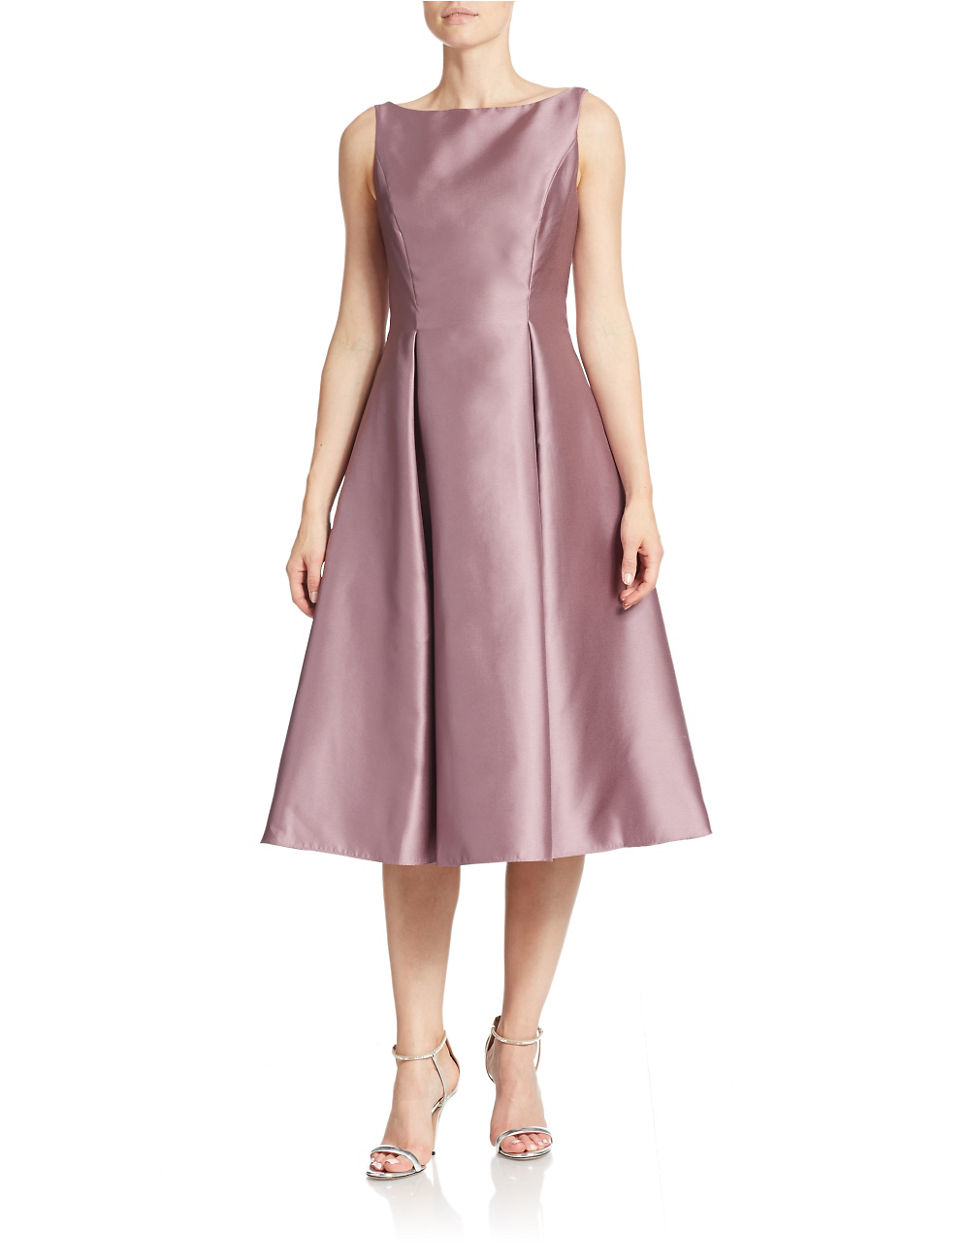 Adrianna Papell Tea Length Fit And Flare Dress In Pink